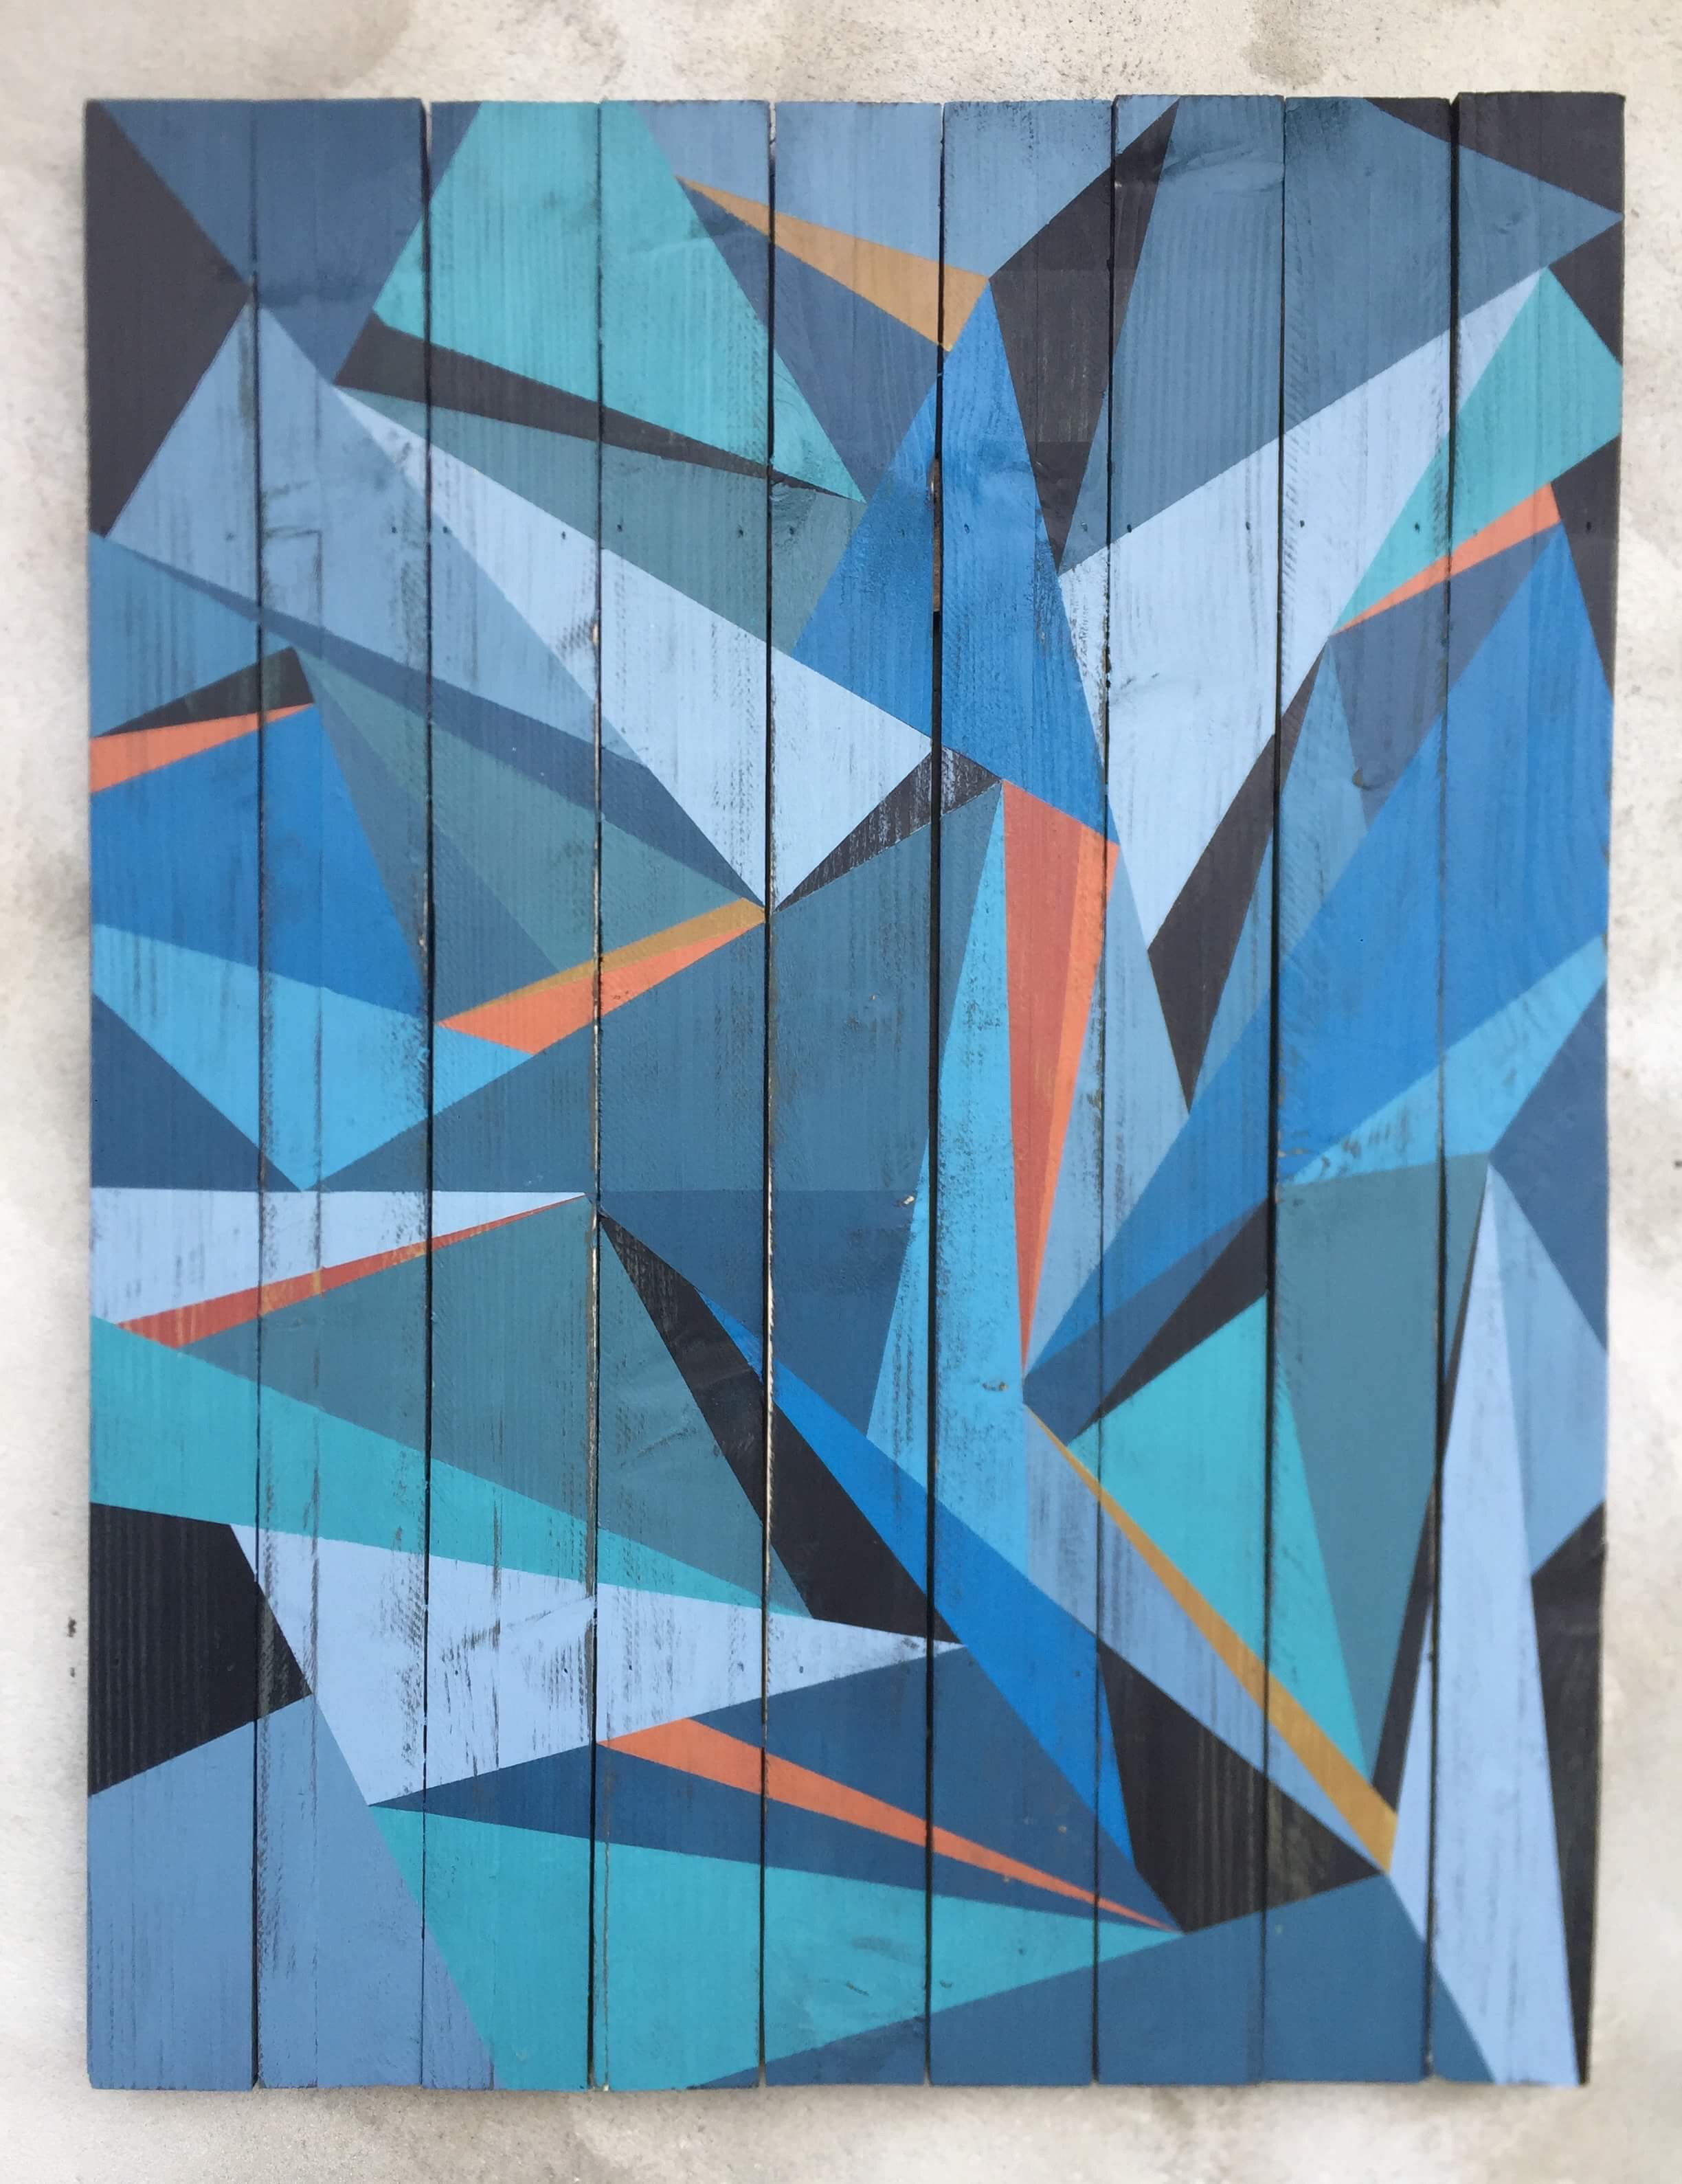 Geometric art on recyled wood. Acrylic on wood. By Henriette Fabricius